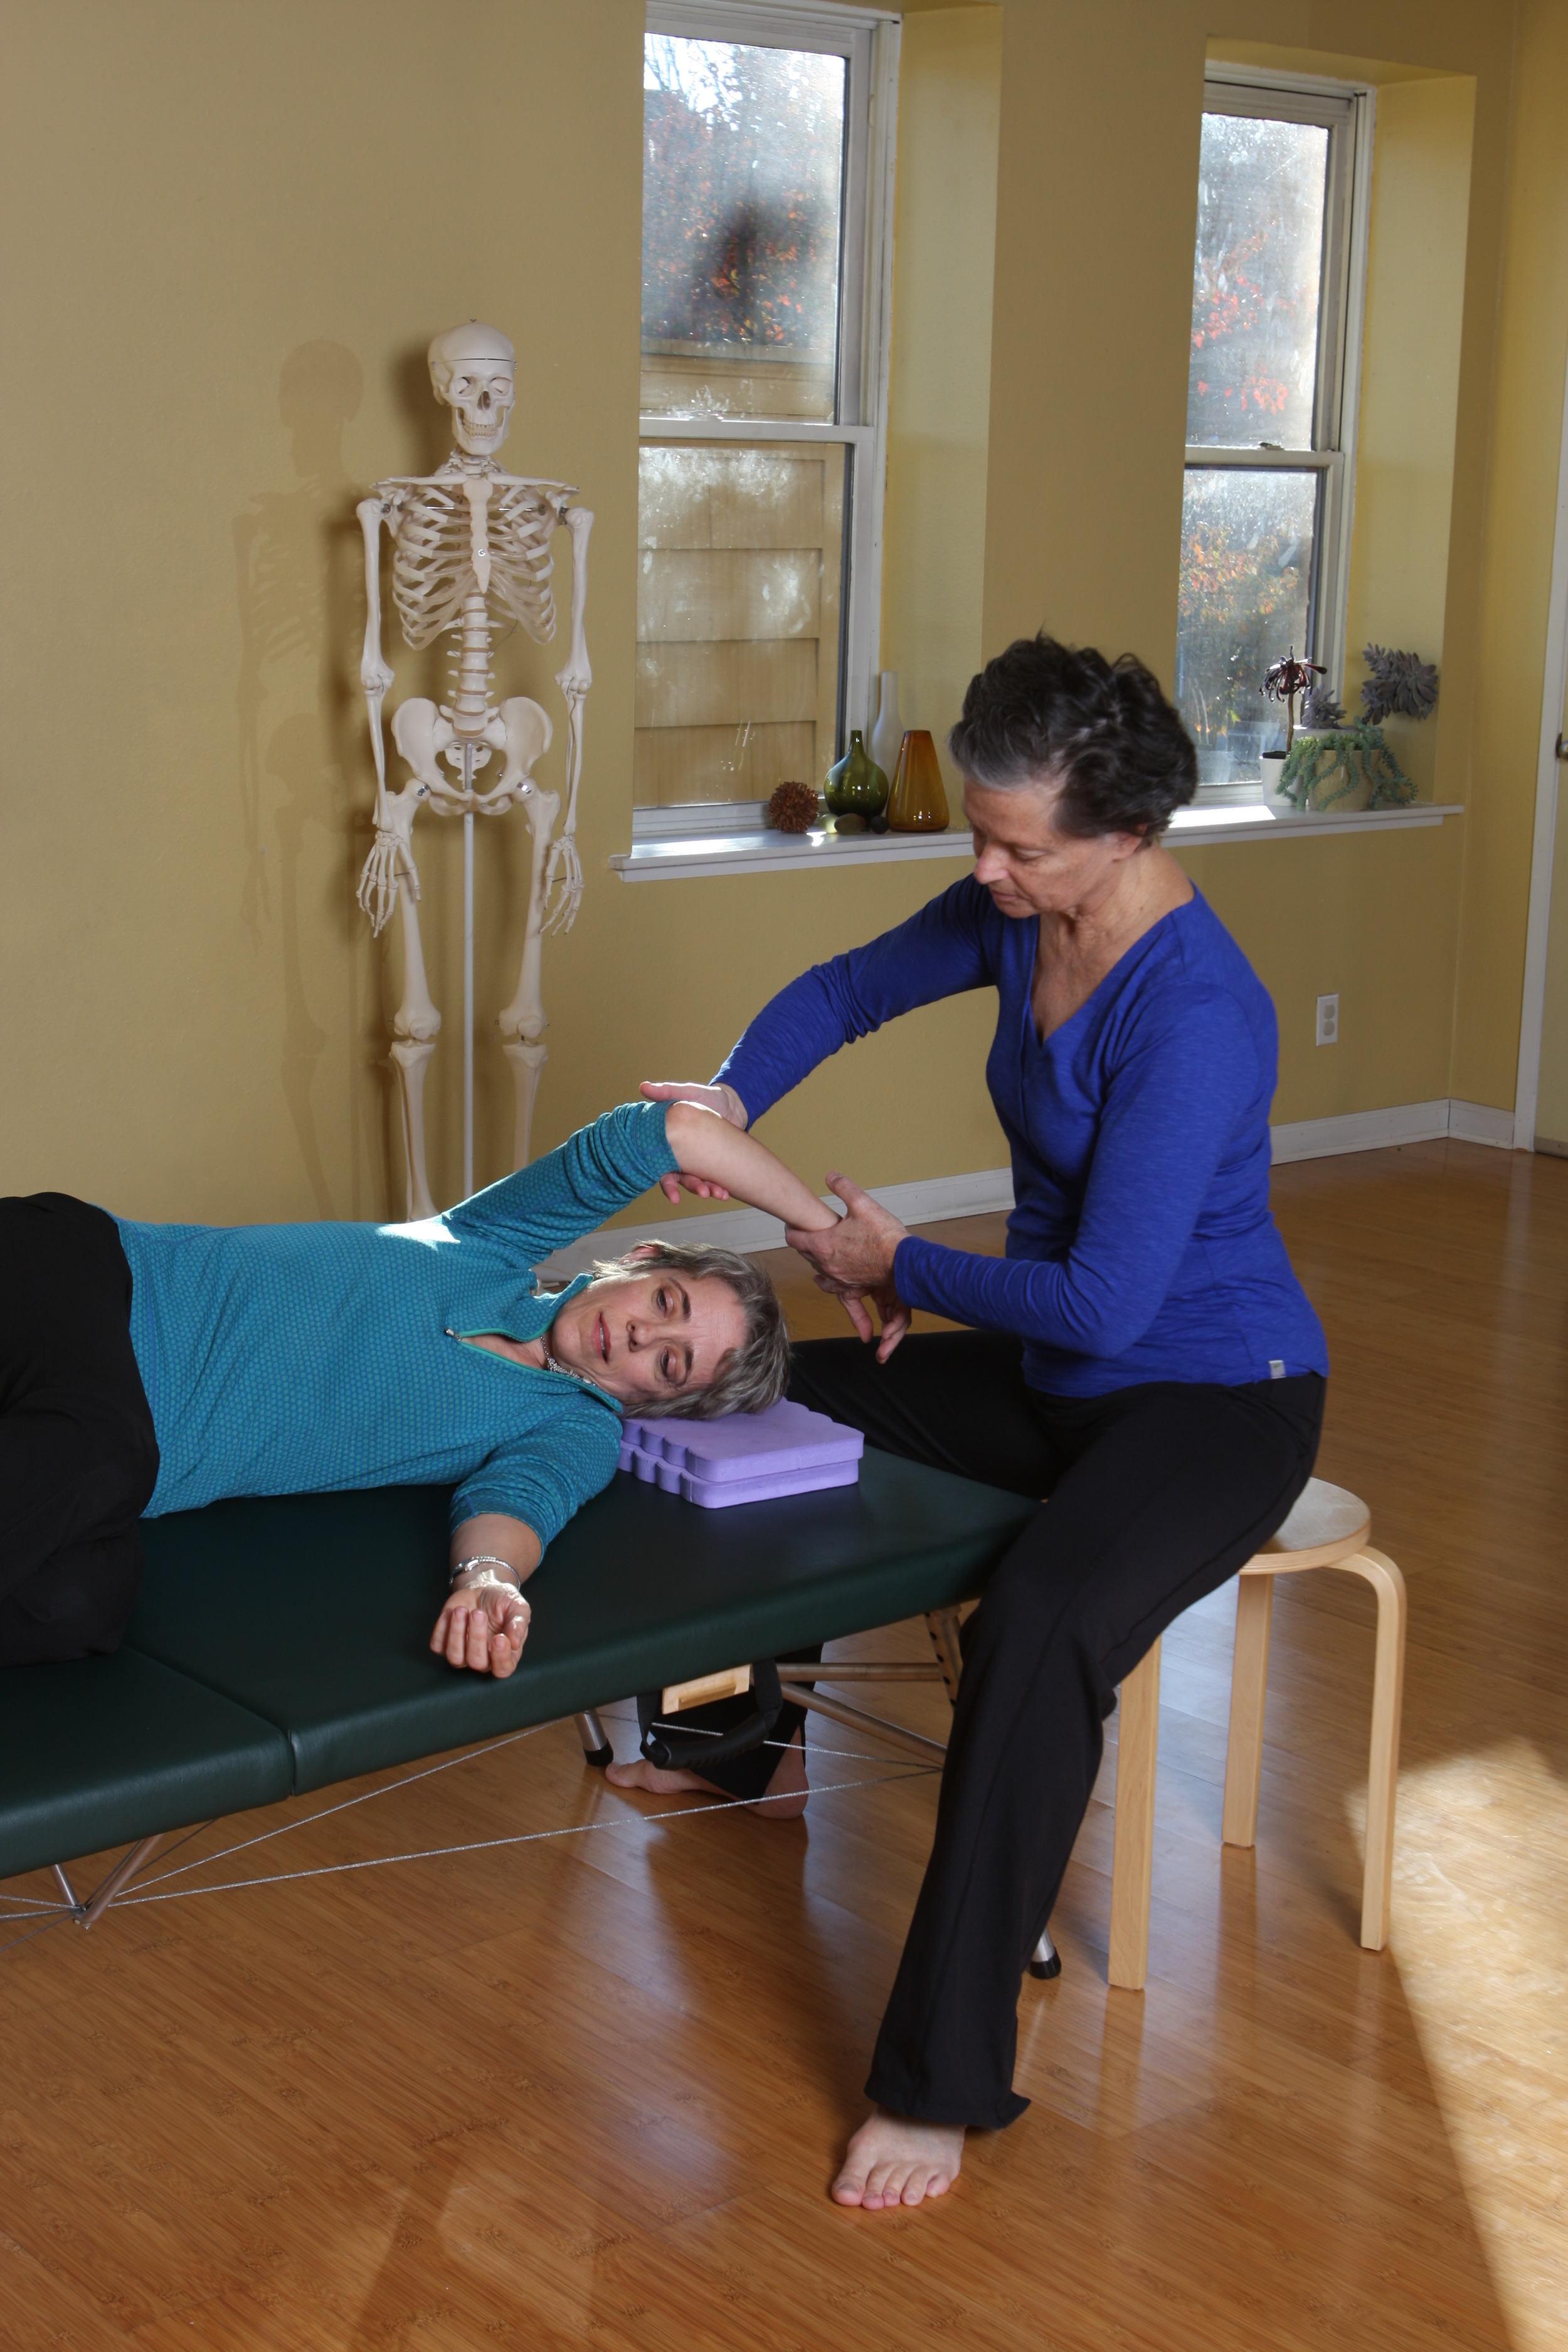 Janelle Keane Campoverde (on table) and Helen Pelton finding freedom and ease during a Functional Integration session.